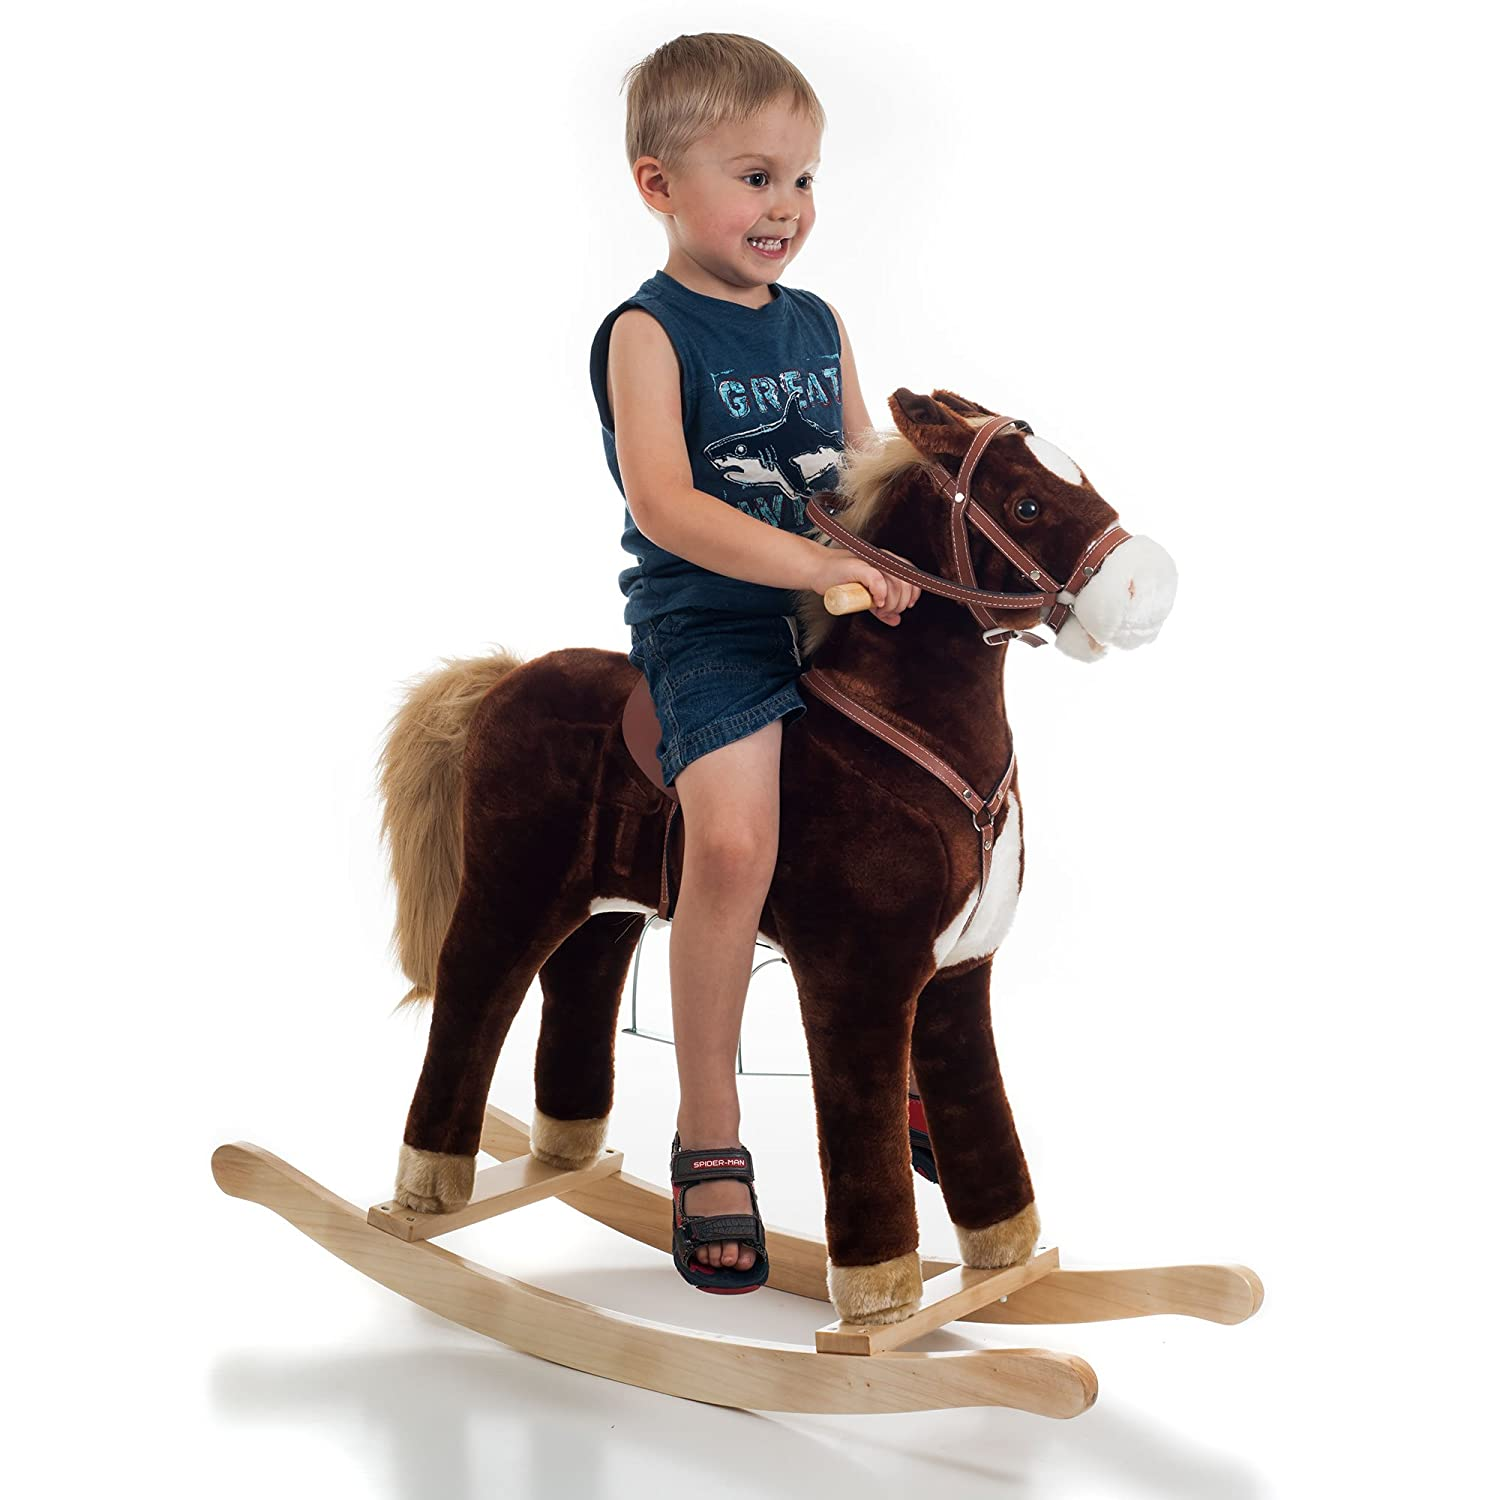 Best Ride On Rocking Horse For 4 Year Old